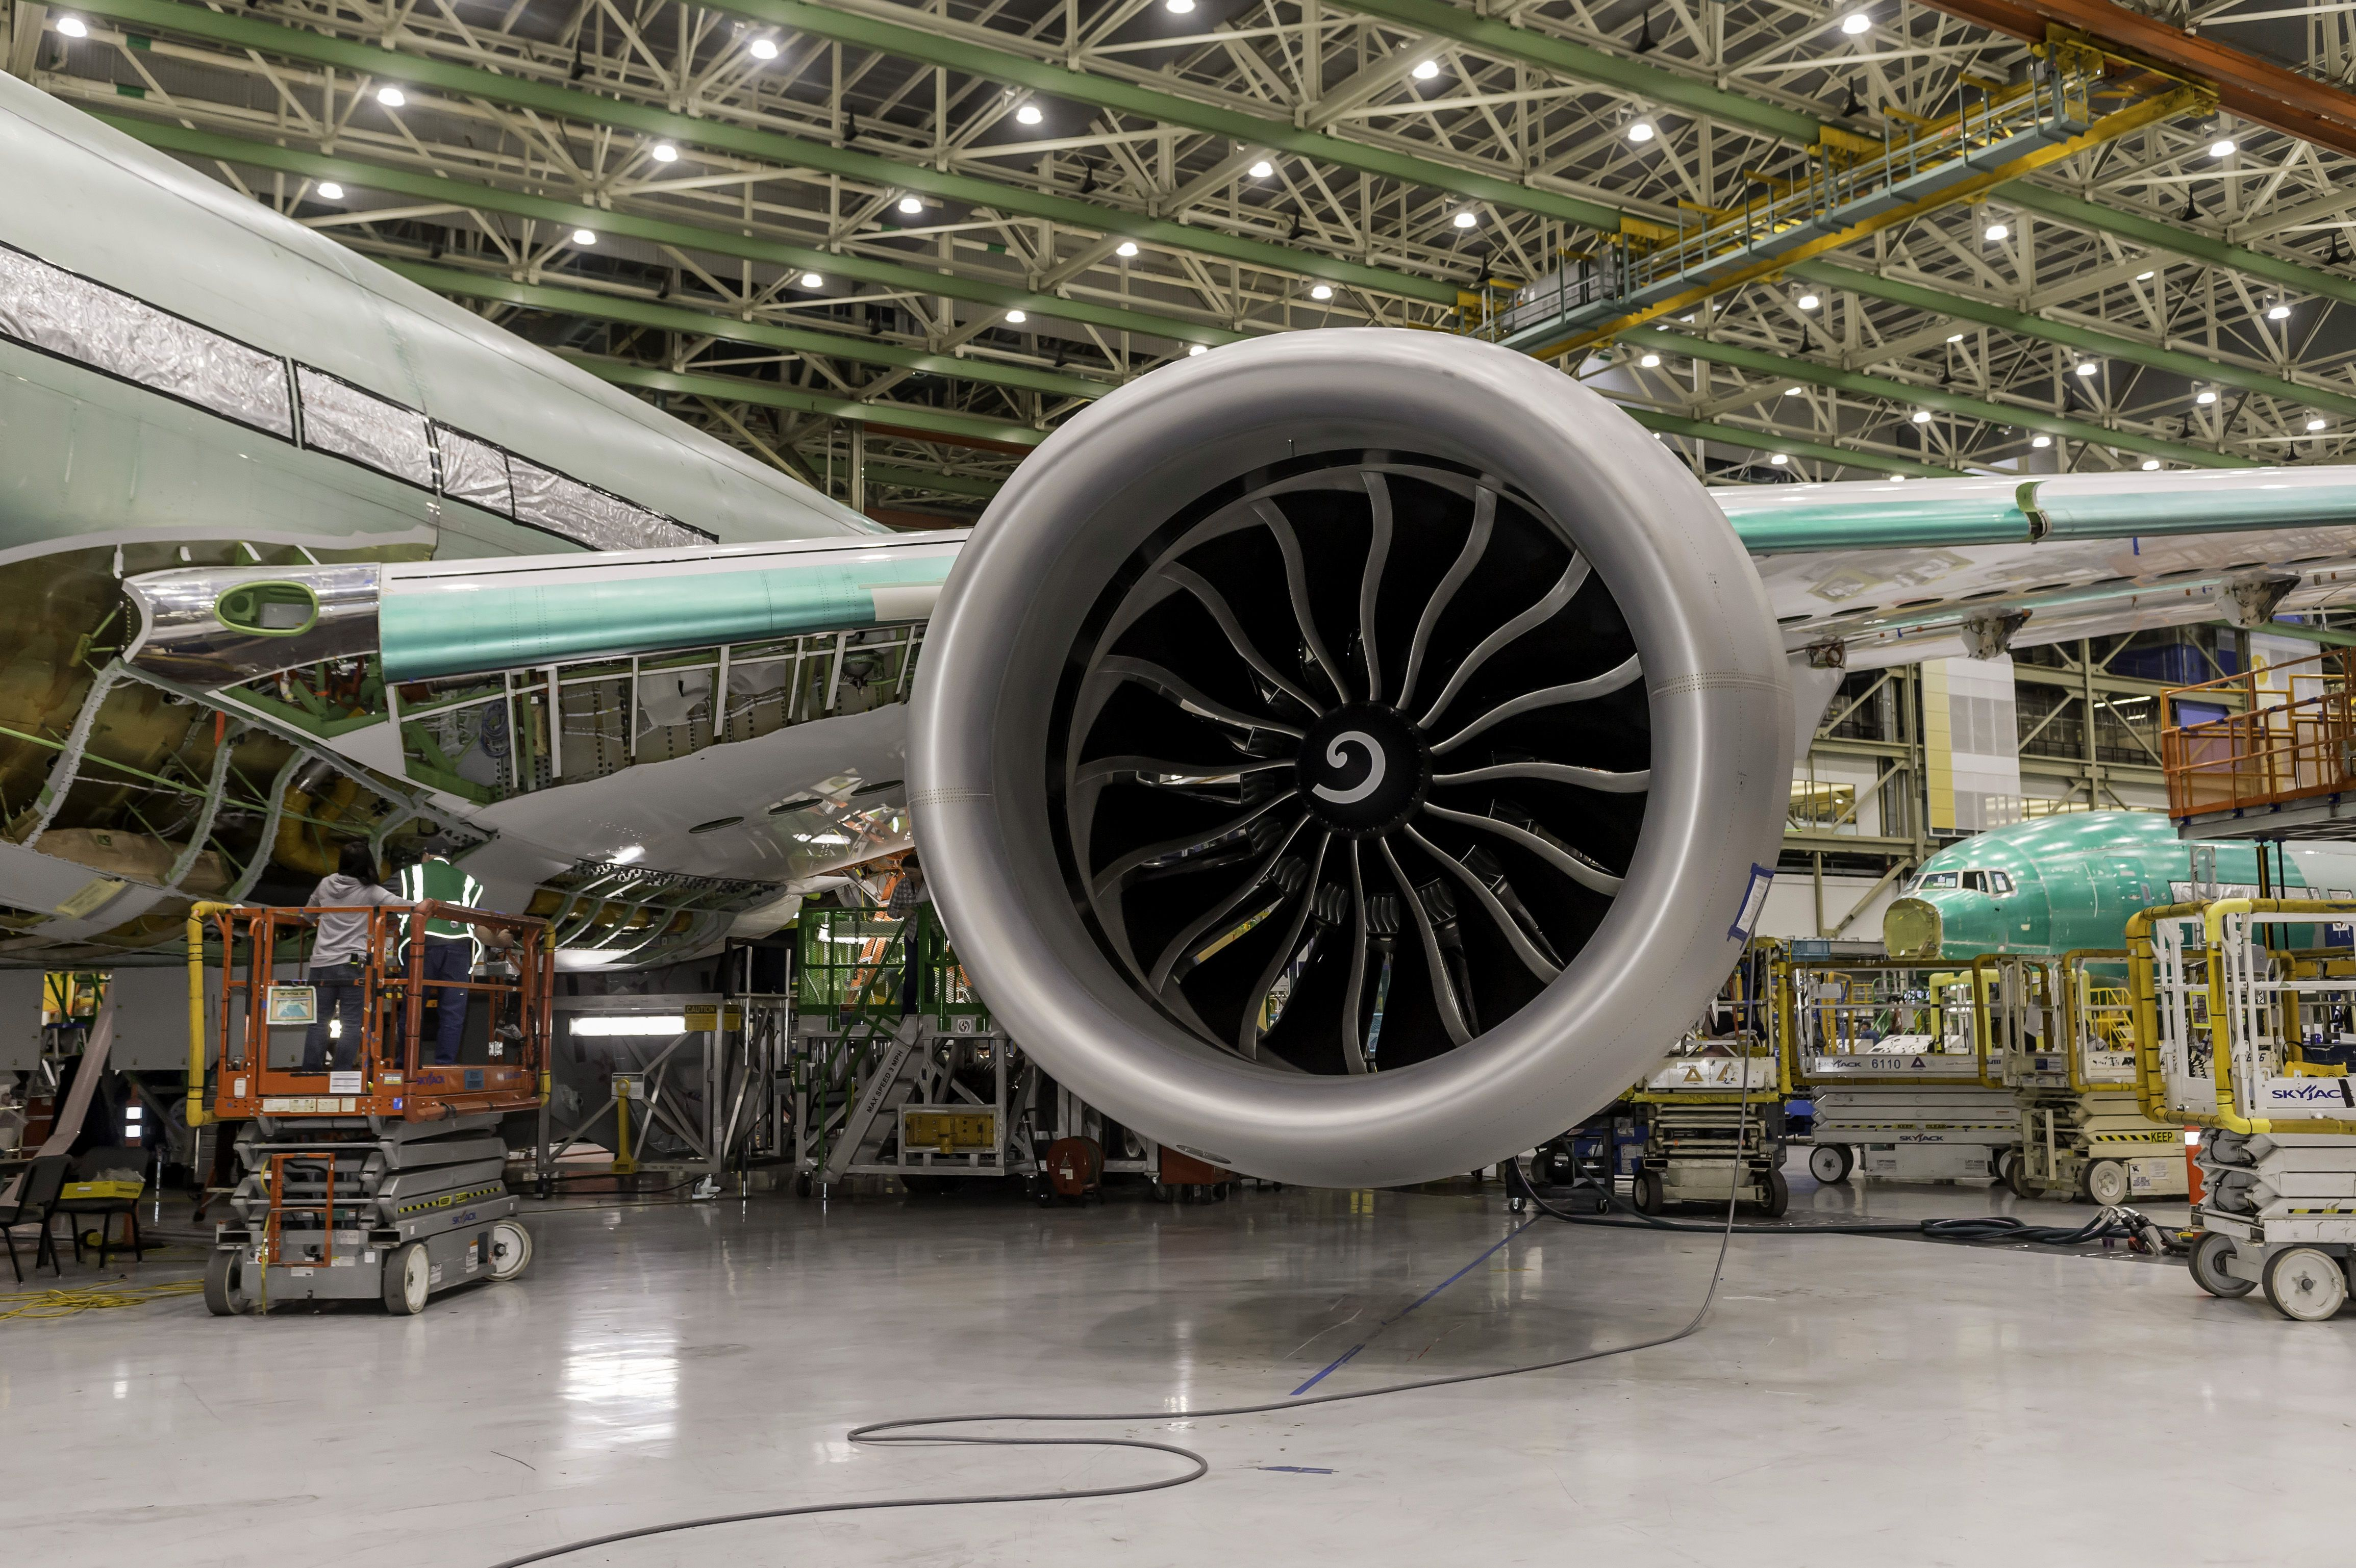 777x-flight-test-engine-install-2-443-15